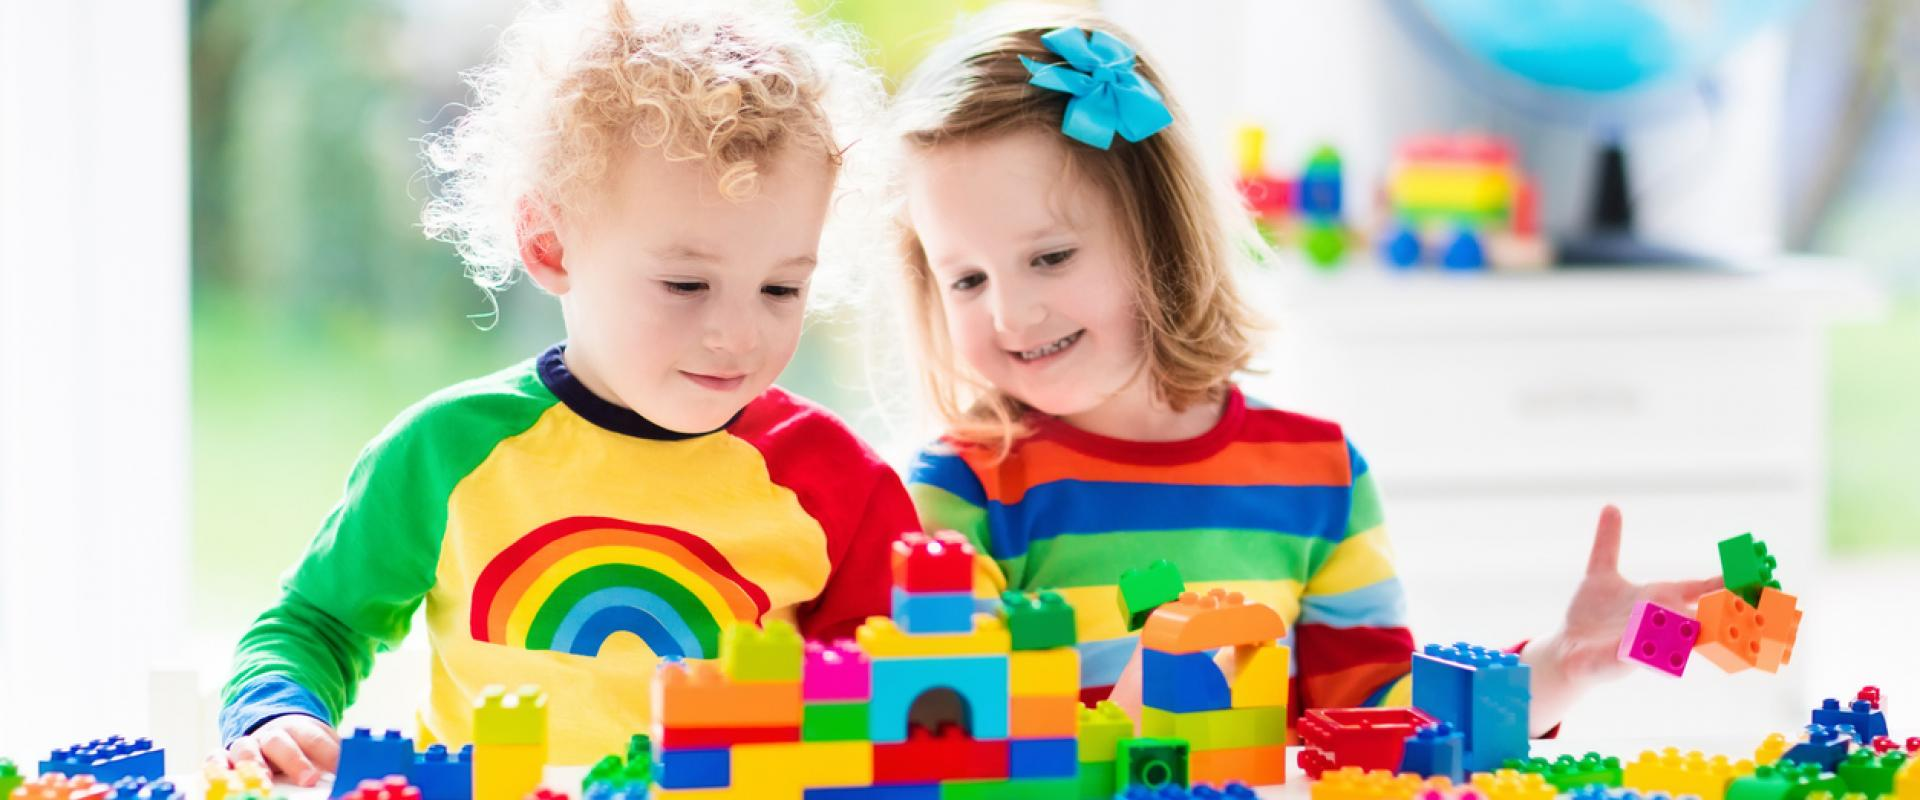 Darling Downs Region Queensland Freehold and Businesses Child Care Centre Reference 520B